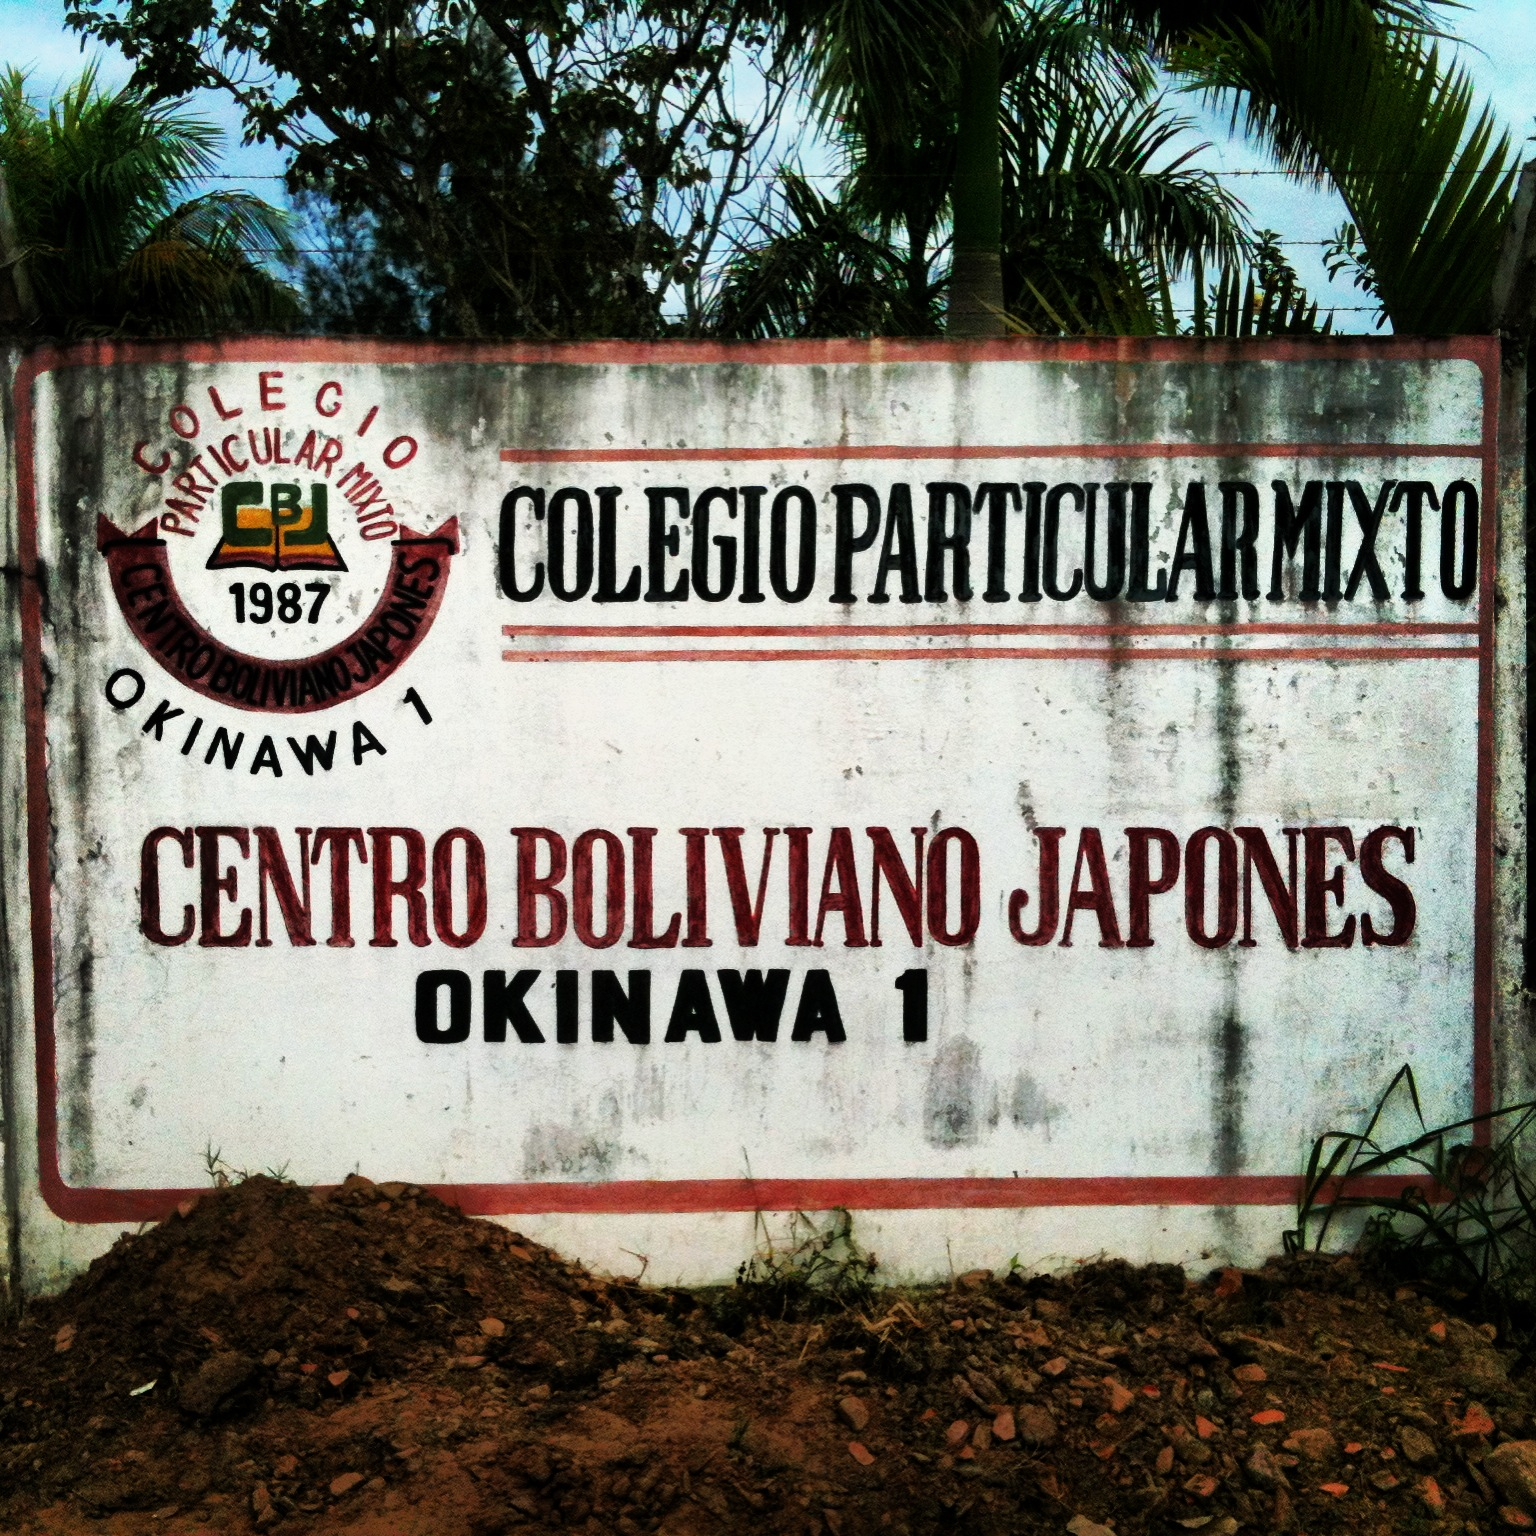 The Colegio Particular Mixto in Okinawa, Bolivia (Photo by Frederick Bernas)